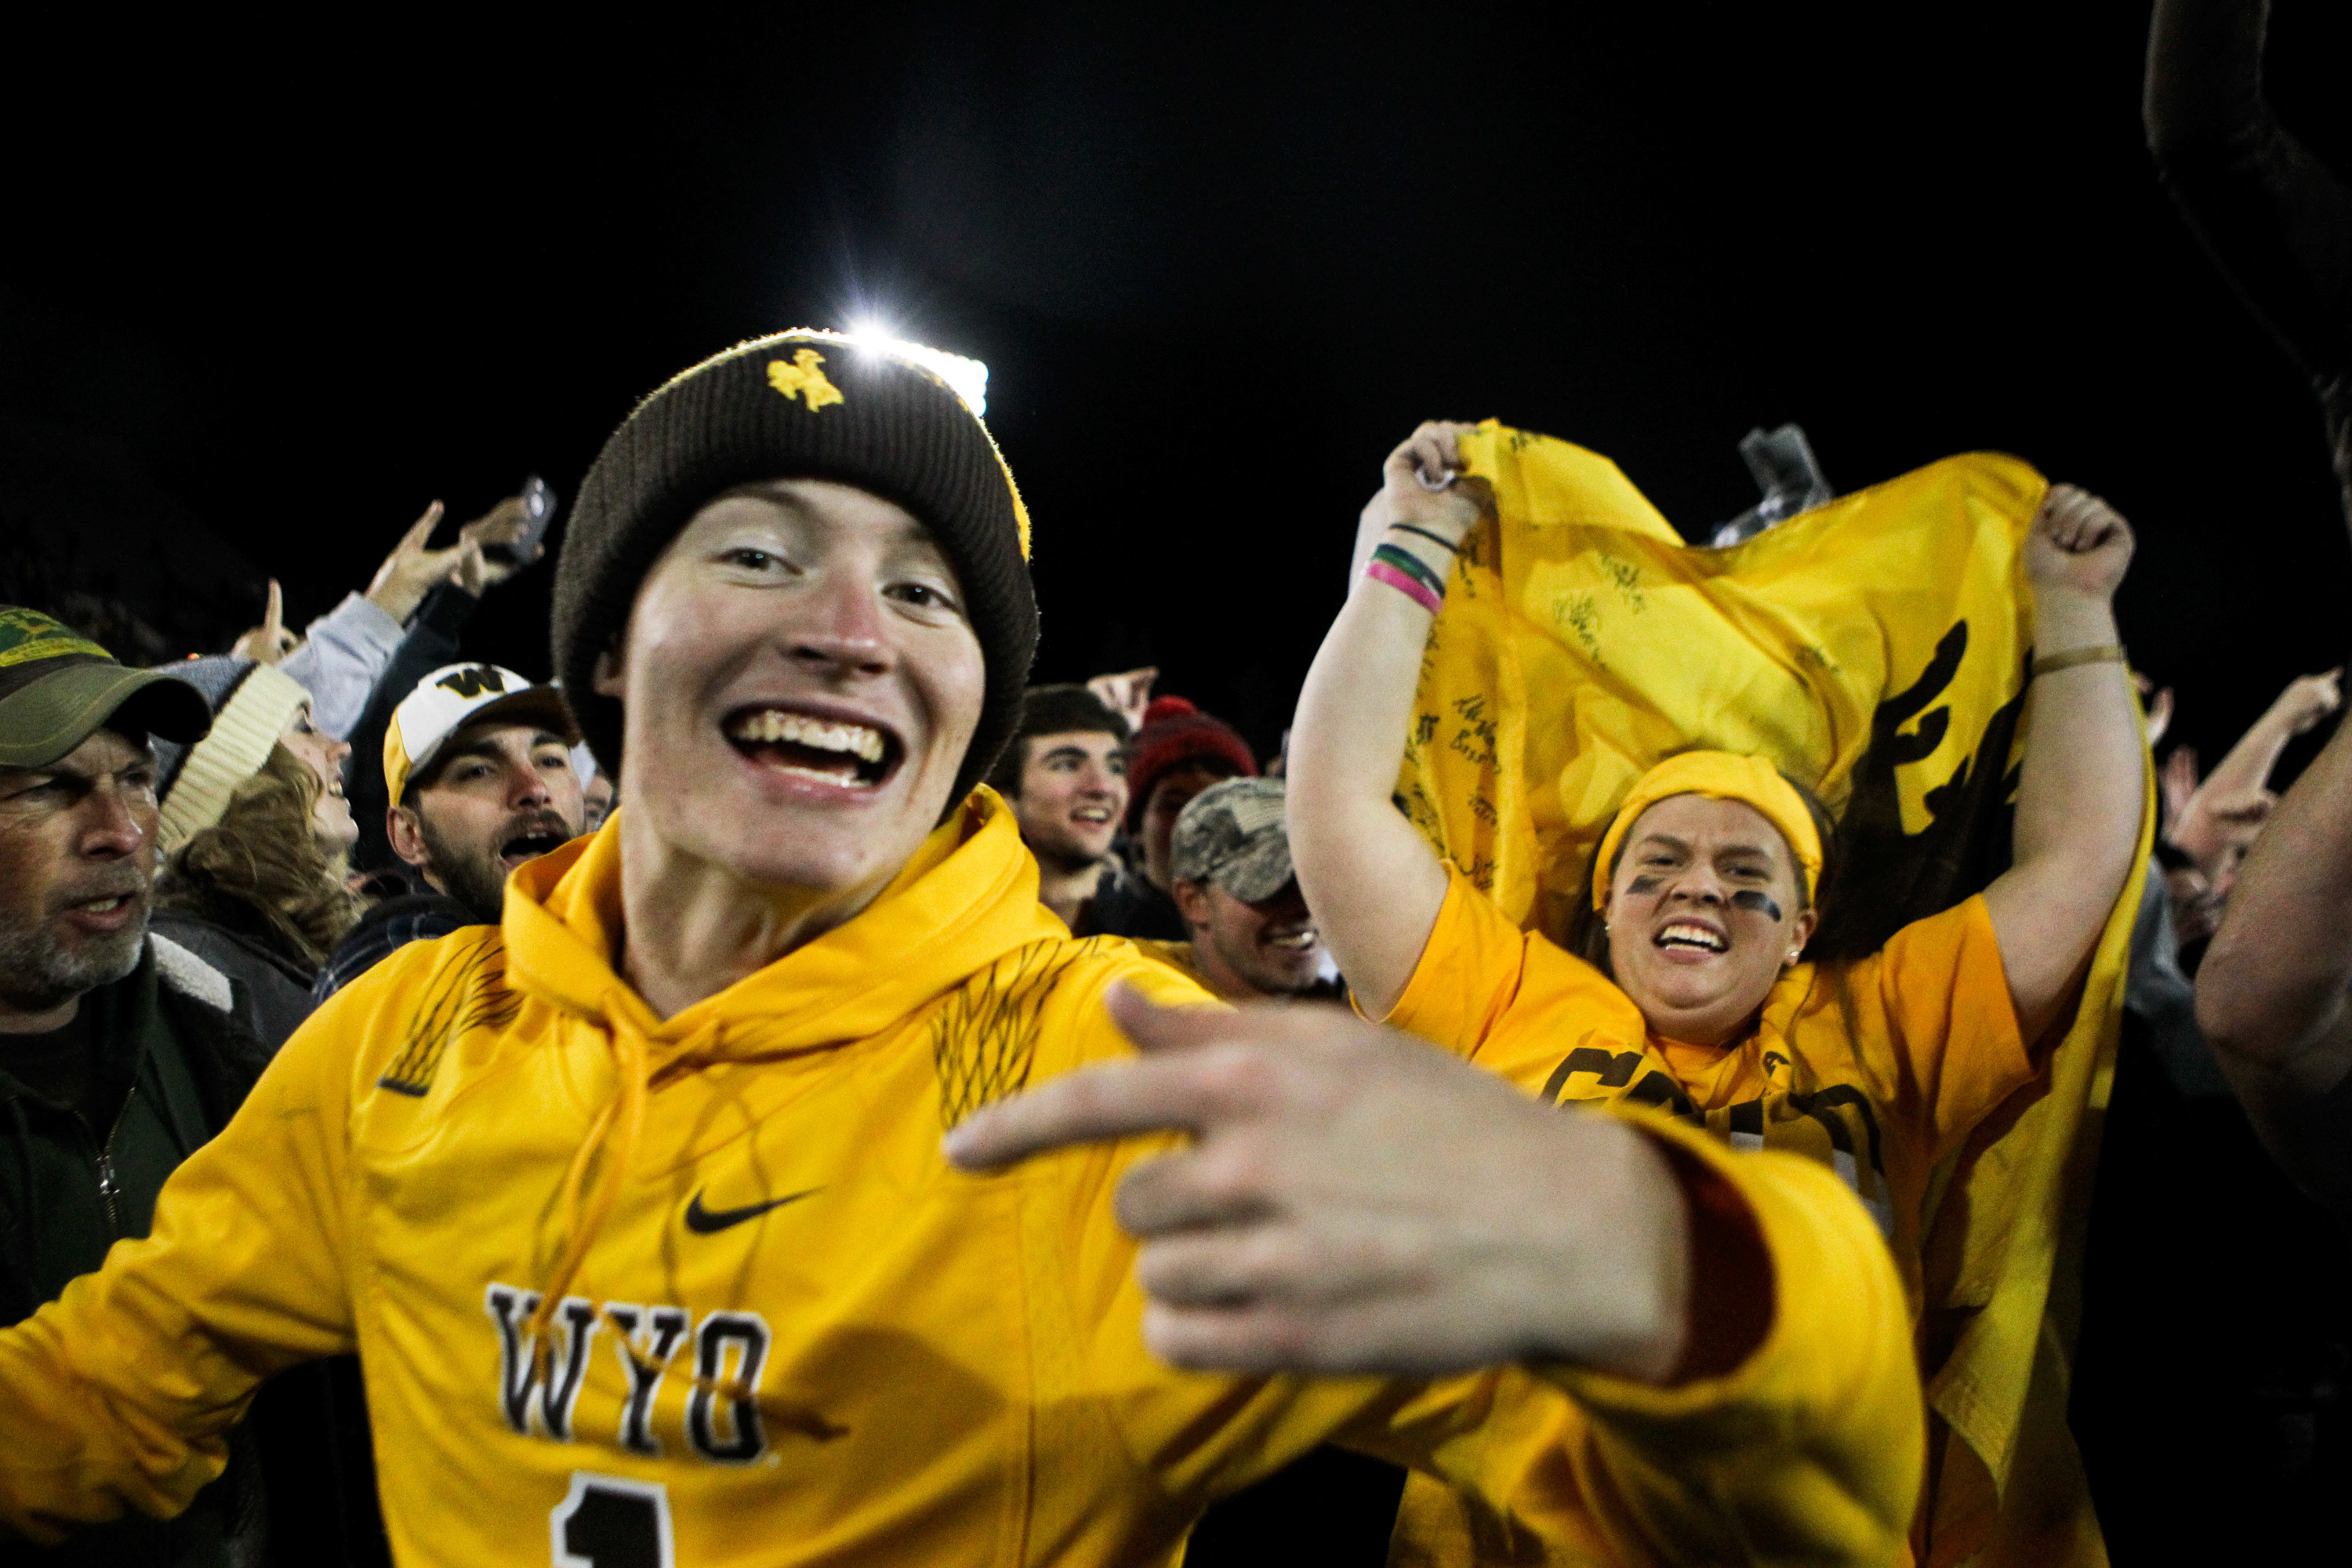 FILE - In this Saturday, Nov. 19, 2016, file photo, Wyoming fans react after the team defeated San Diego State 34-33 in Laramie, Wyo. By all accounts, Wyoming's football program has made a remarkable turnaround from a team that last had a winning season i